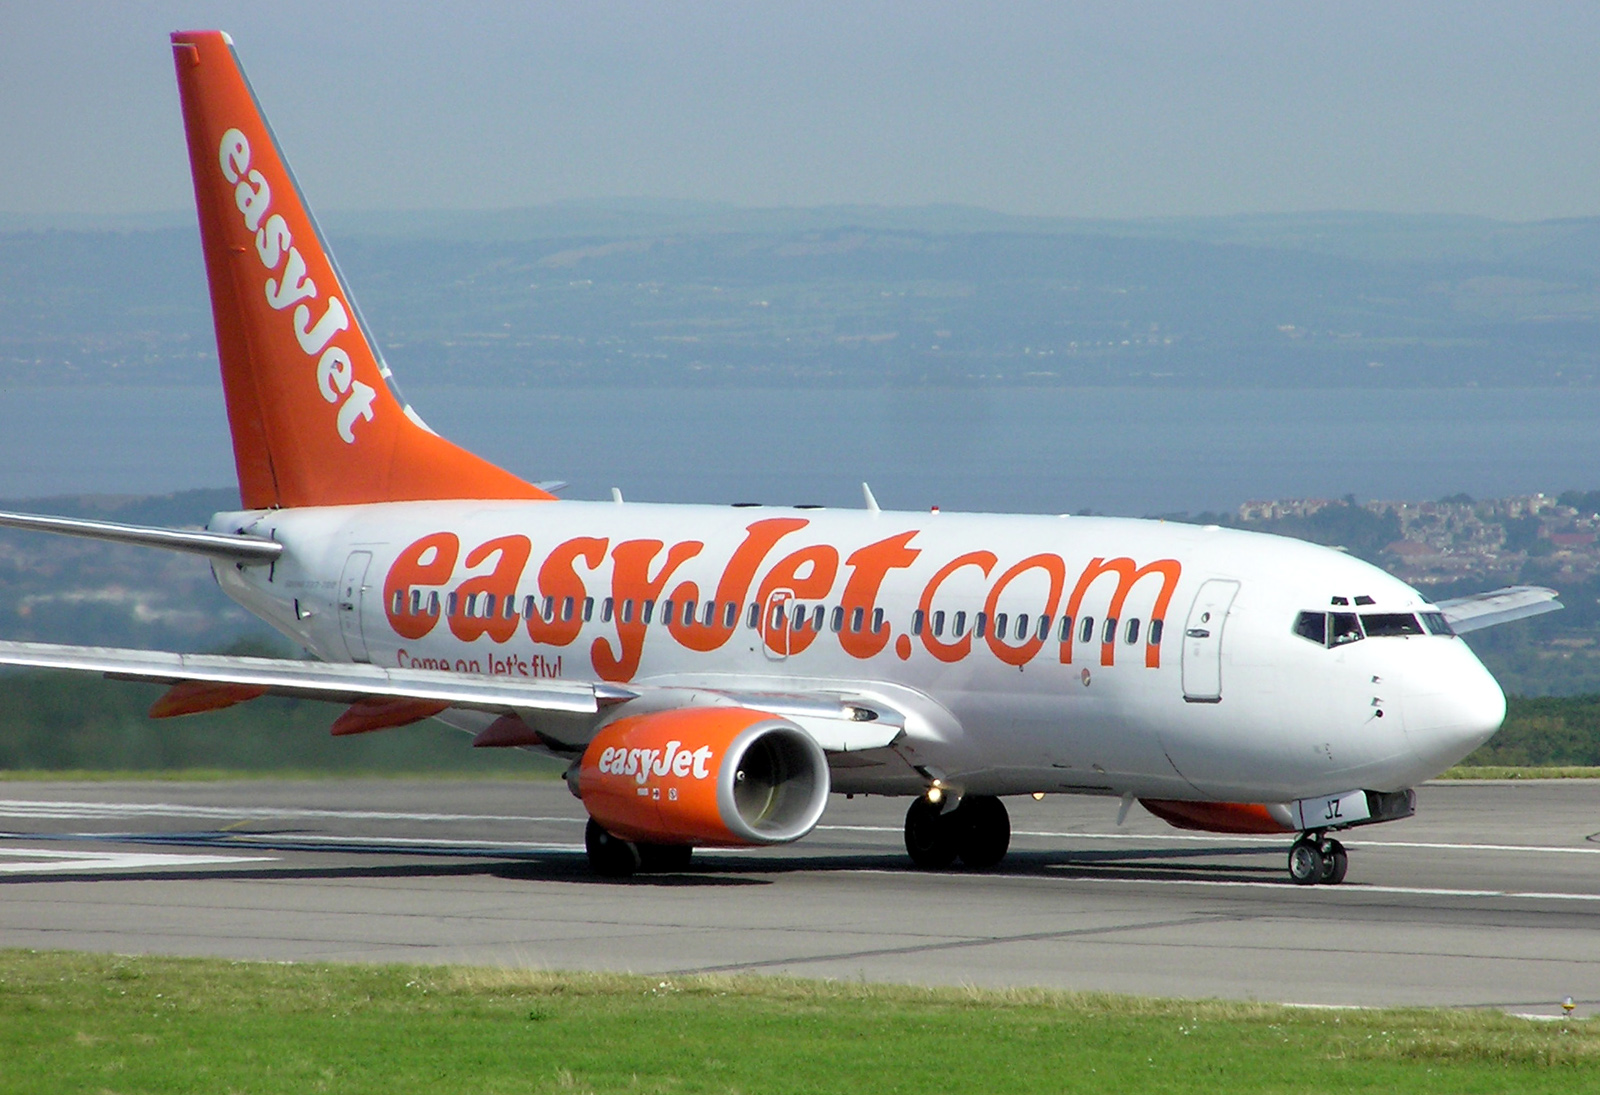 Easy jet Flying to Scandinavia